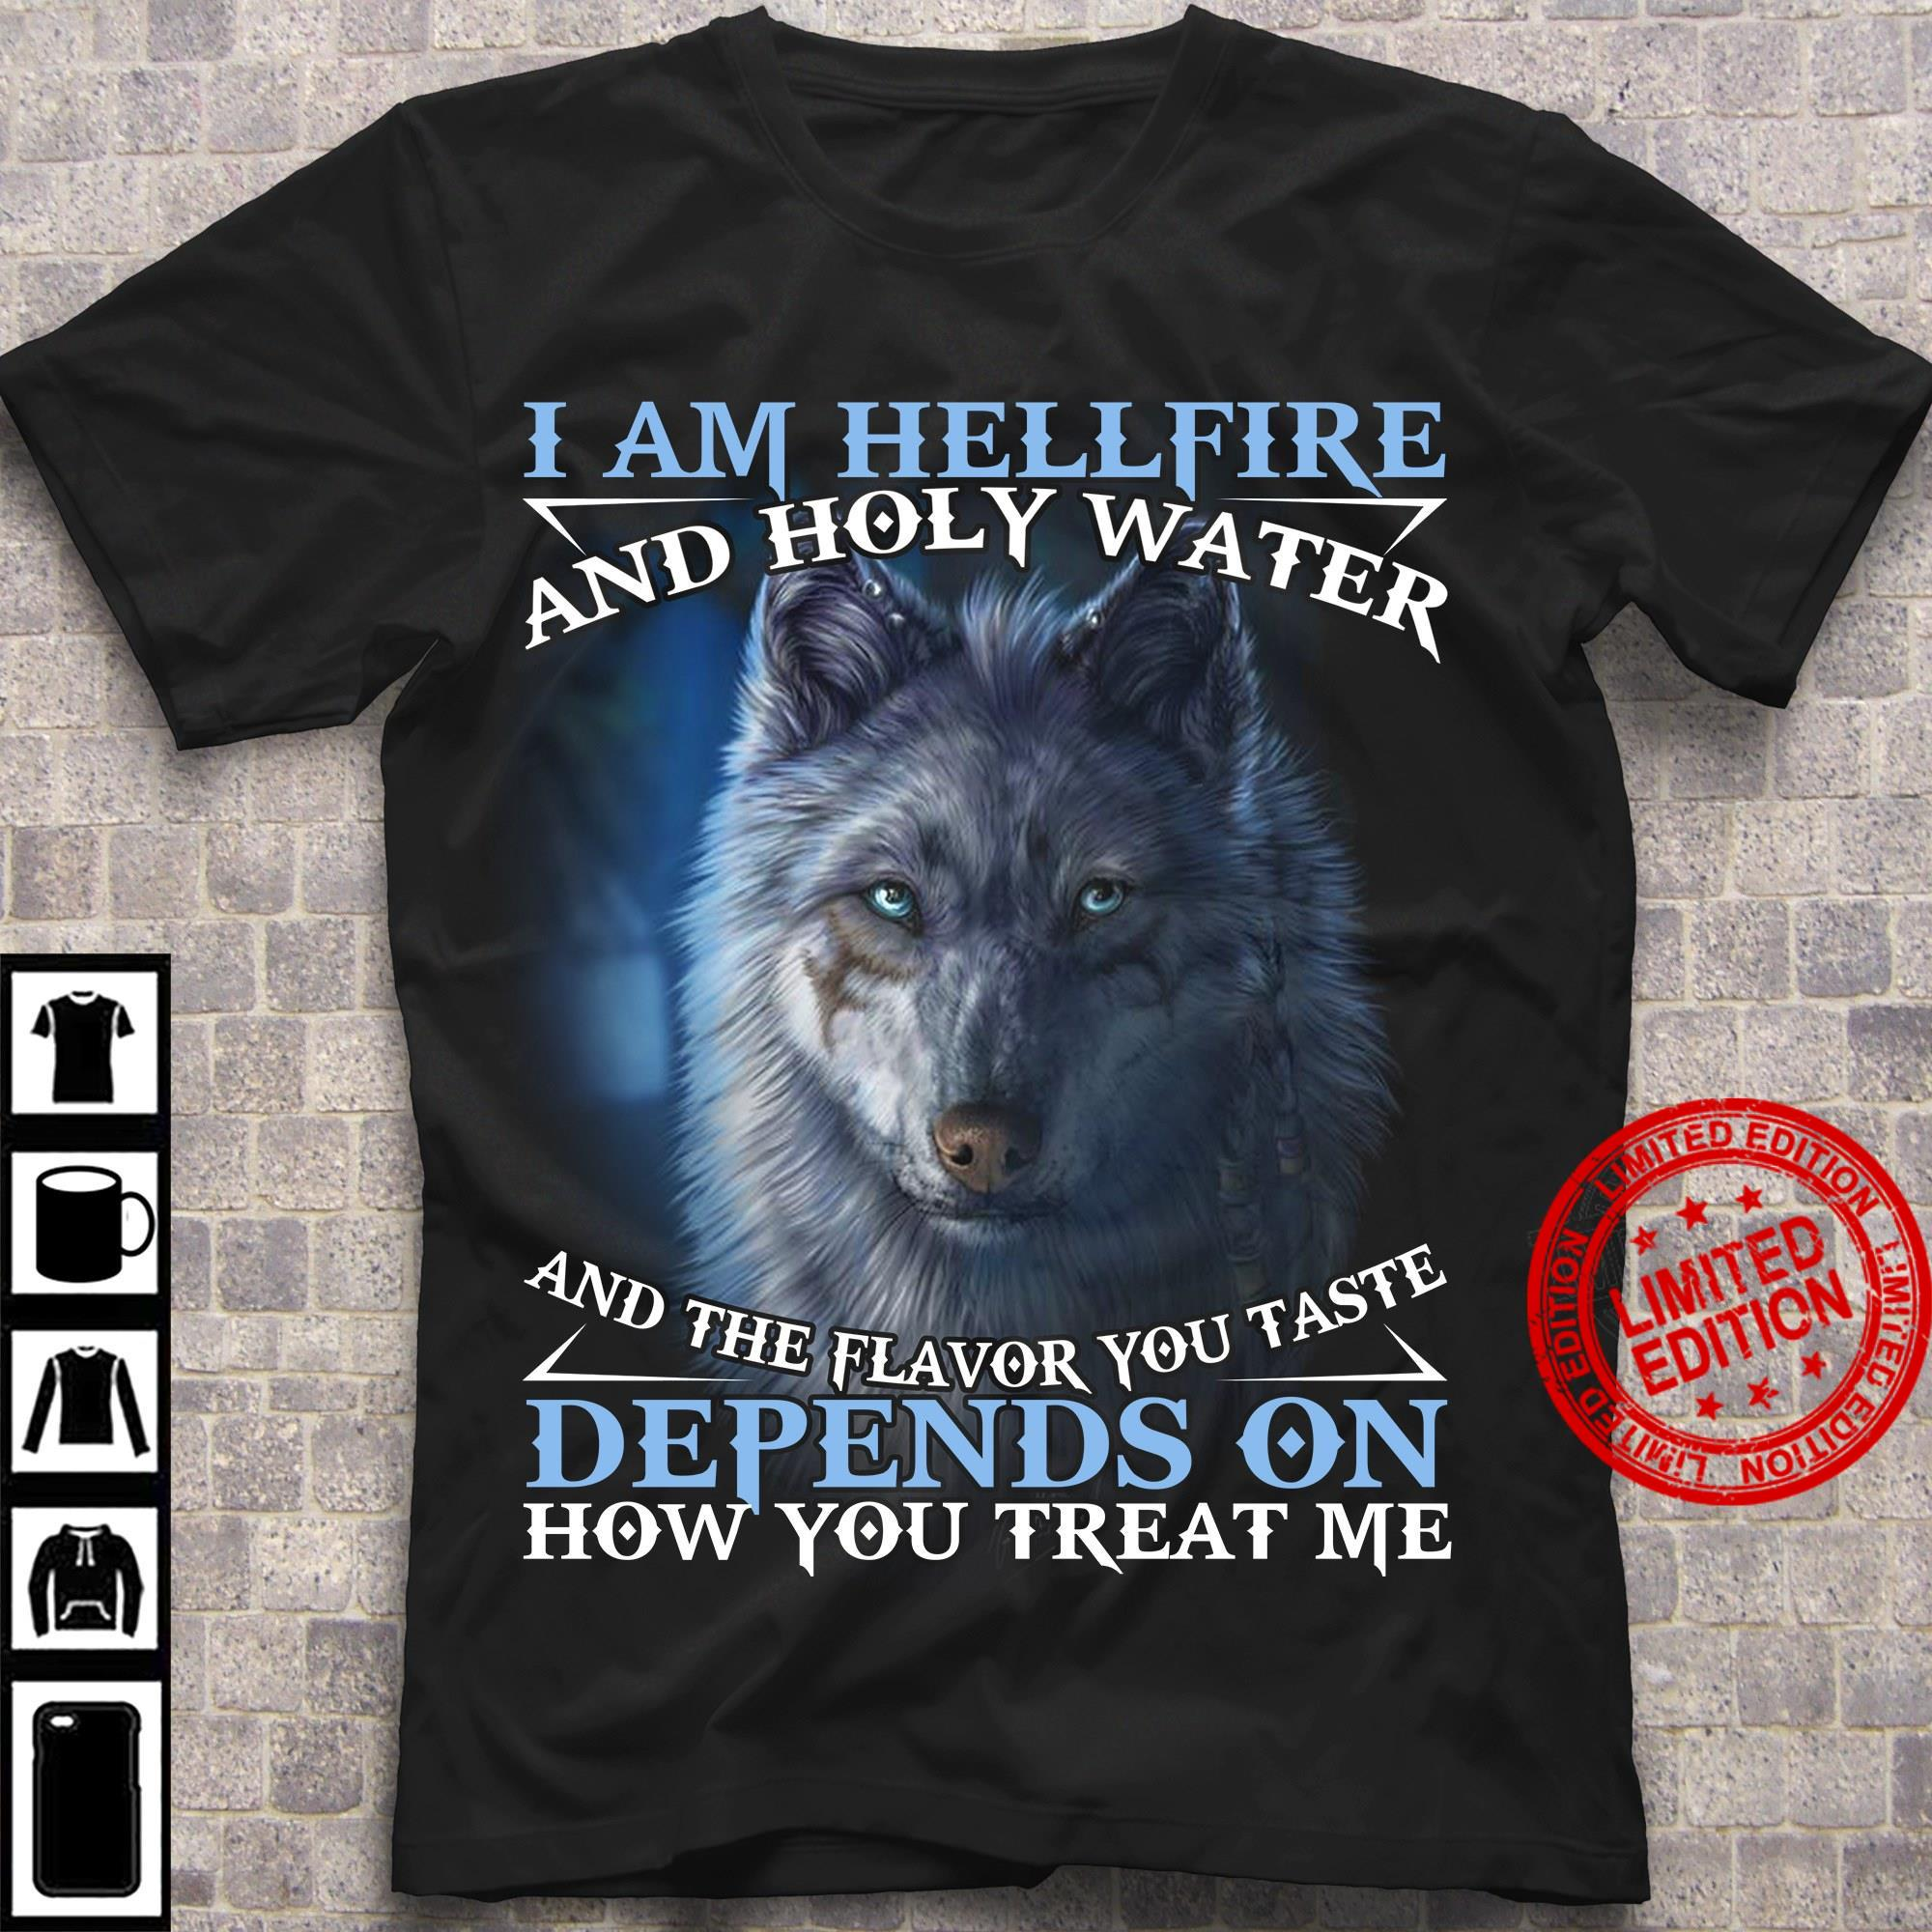 I Am Hellfire And Holy Water And The Flavor You Taste Depends On How You Treat Me Shirt